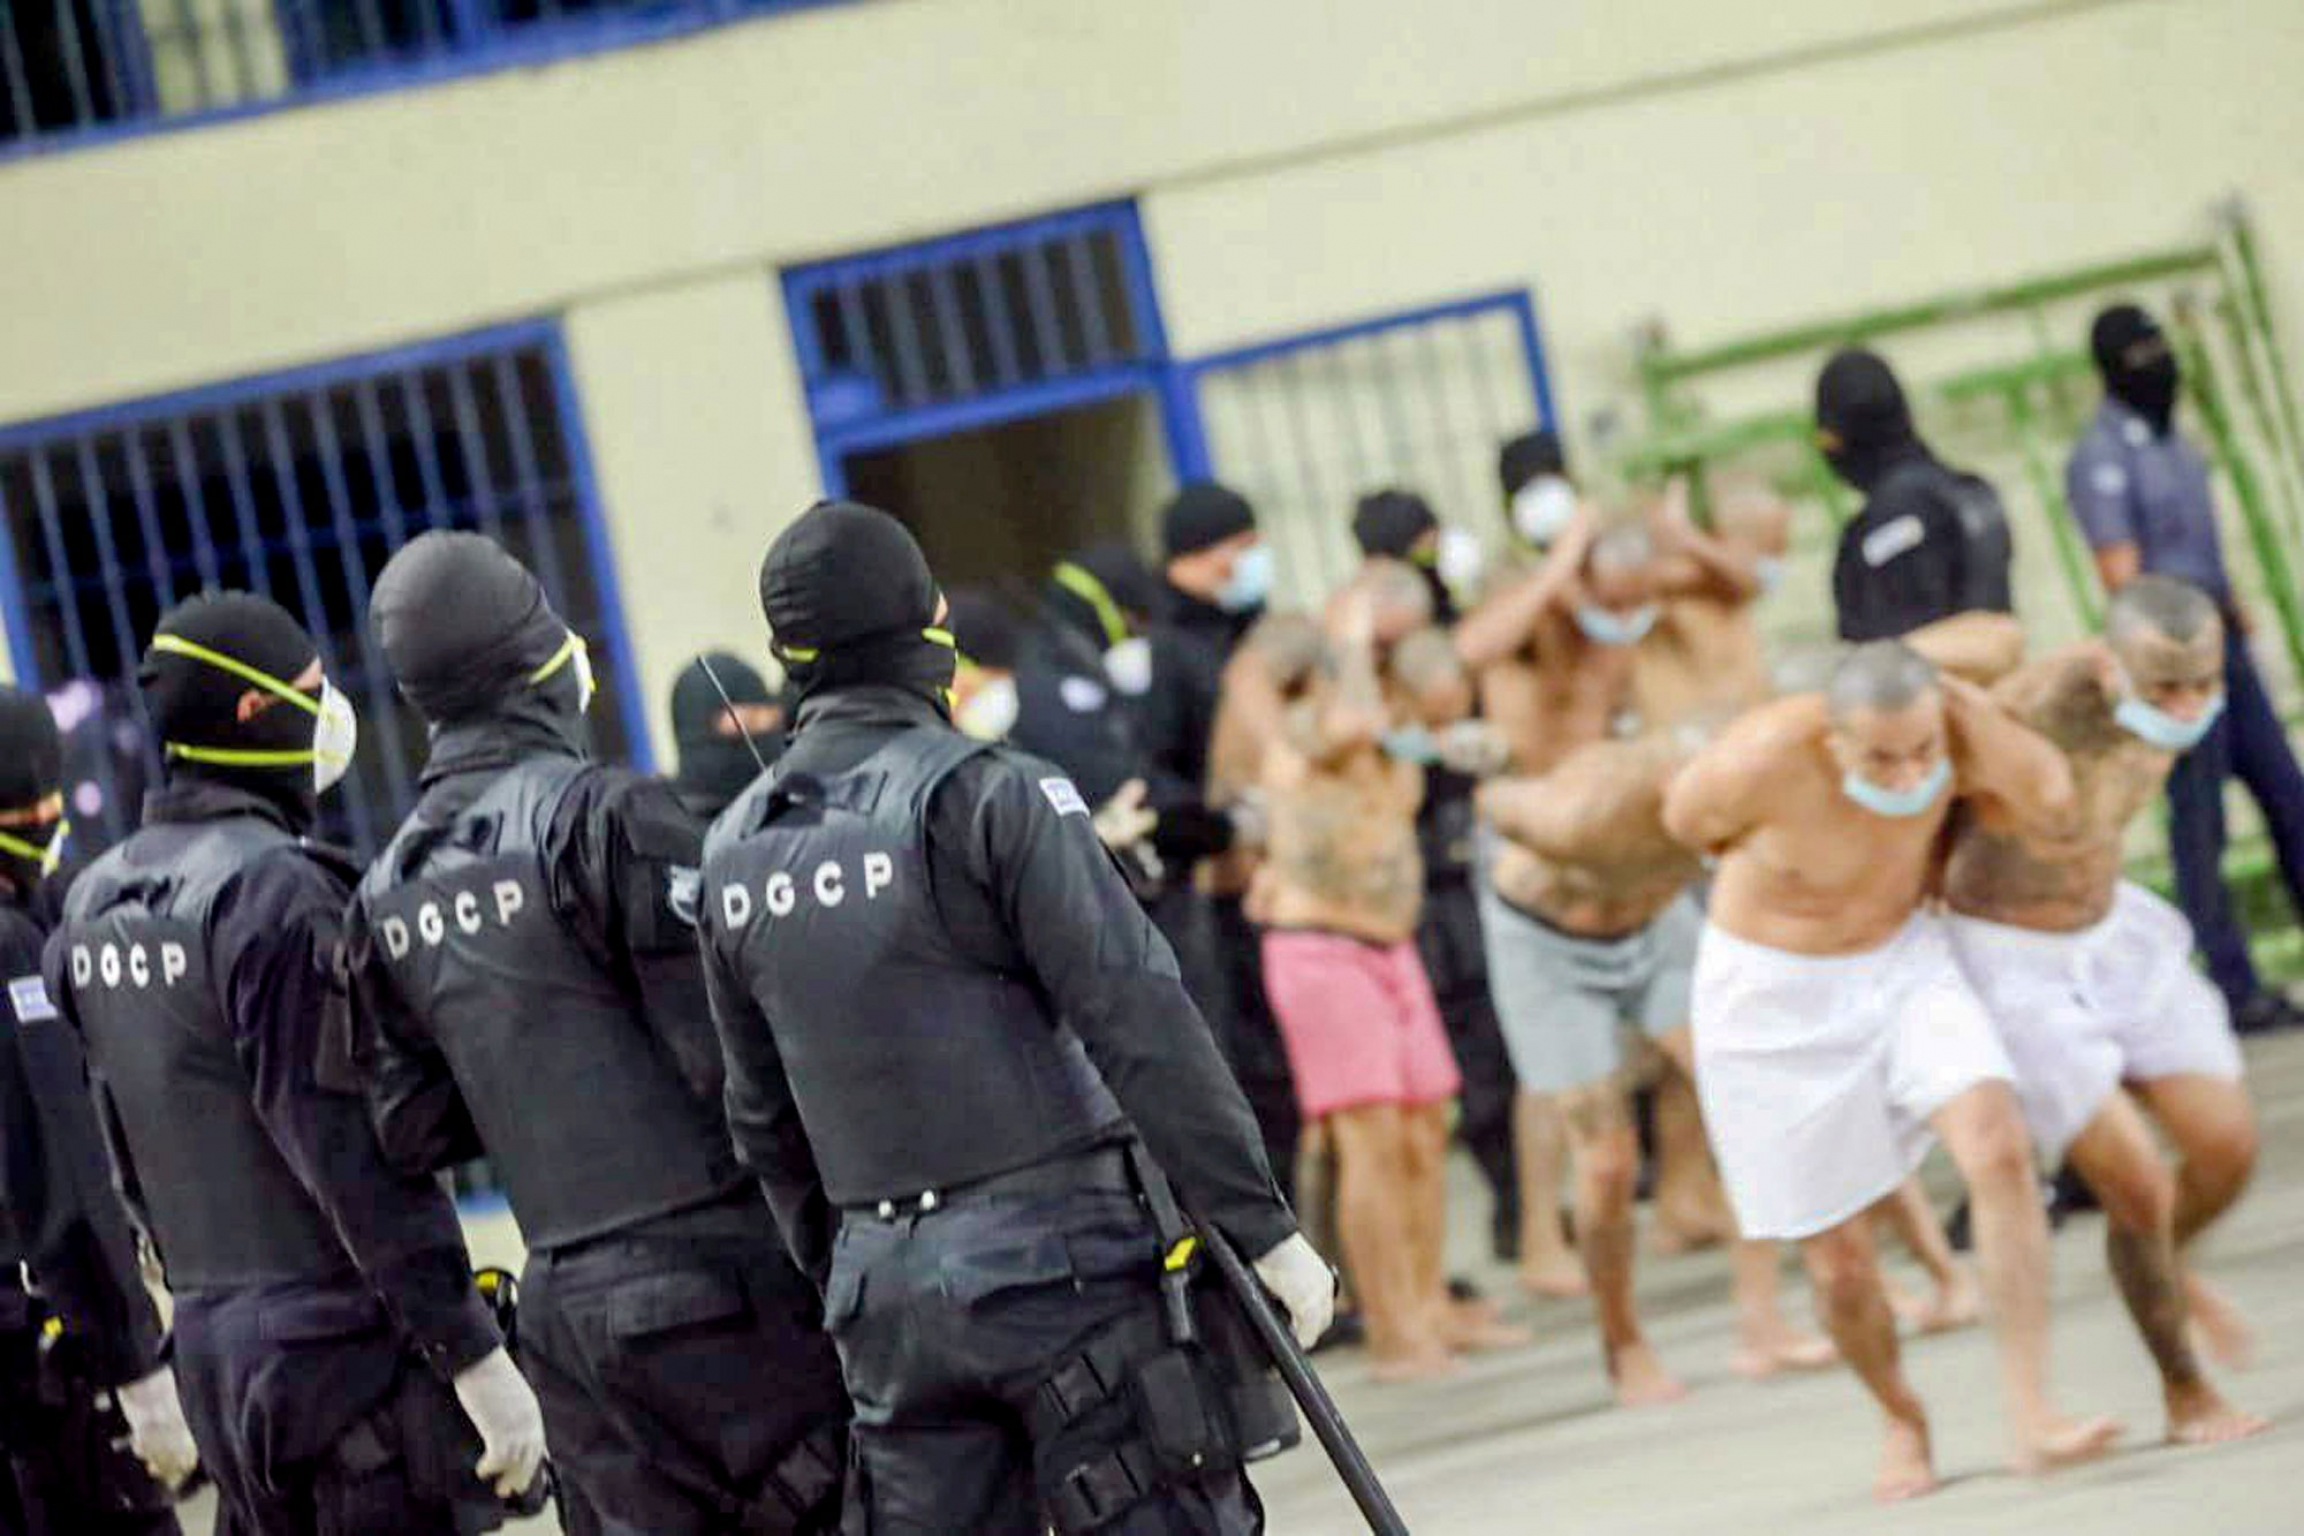 Inmates are shown at Izalco jail in the distance and walking with several armed guards in the nearground.